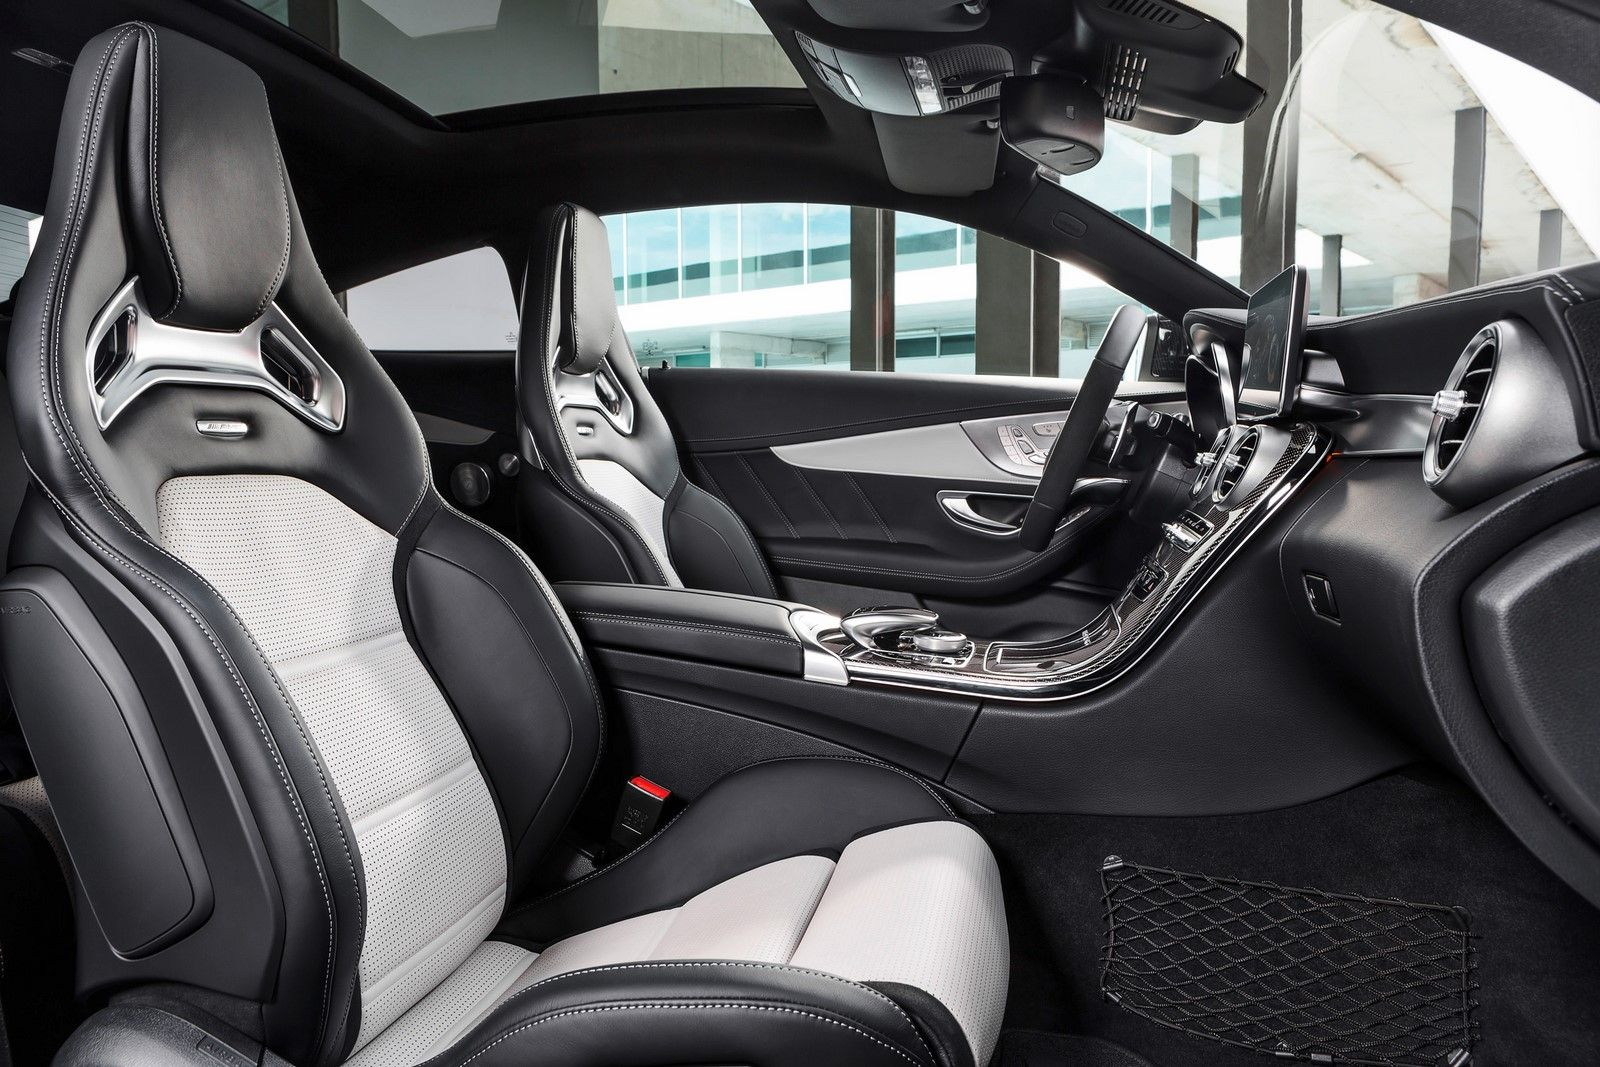 2016 Mercedes Amg C 63 Coupe Specifications Revealed Mercedes